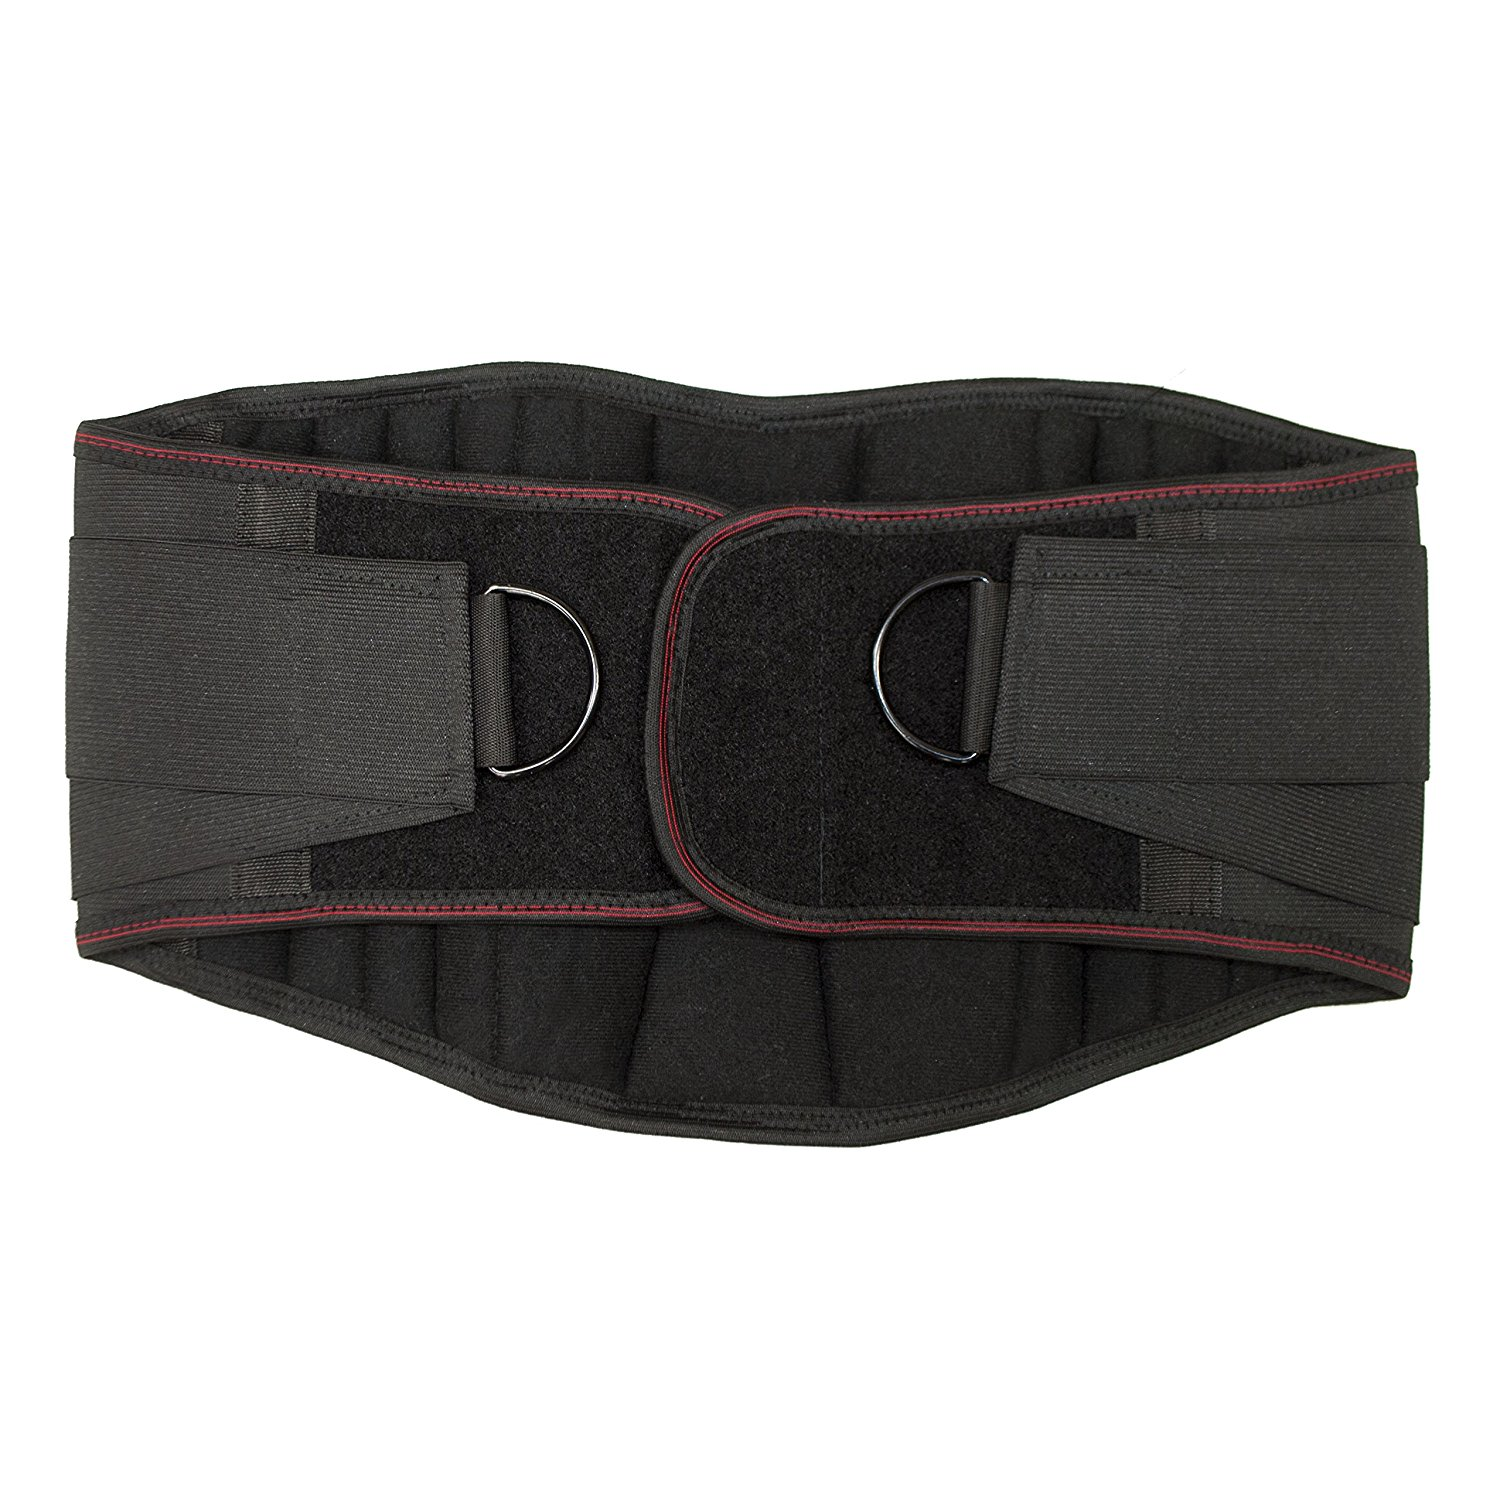 BACK03M Lower Back Waist Support Comfort Lower Back Support